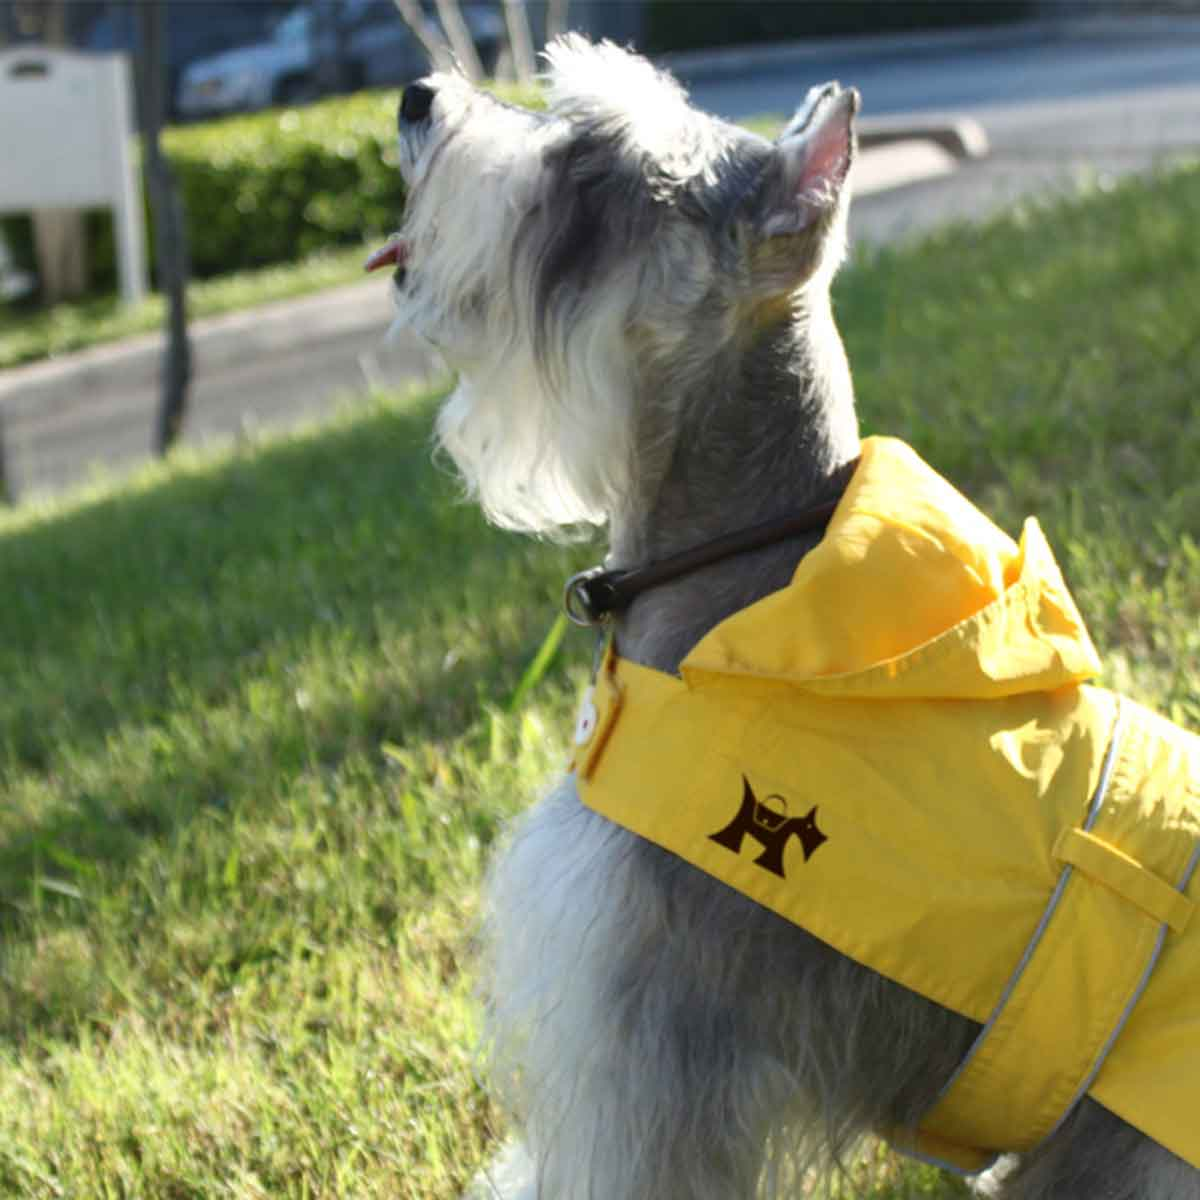 Branded raincoat on dog